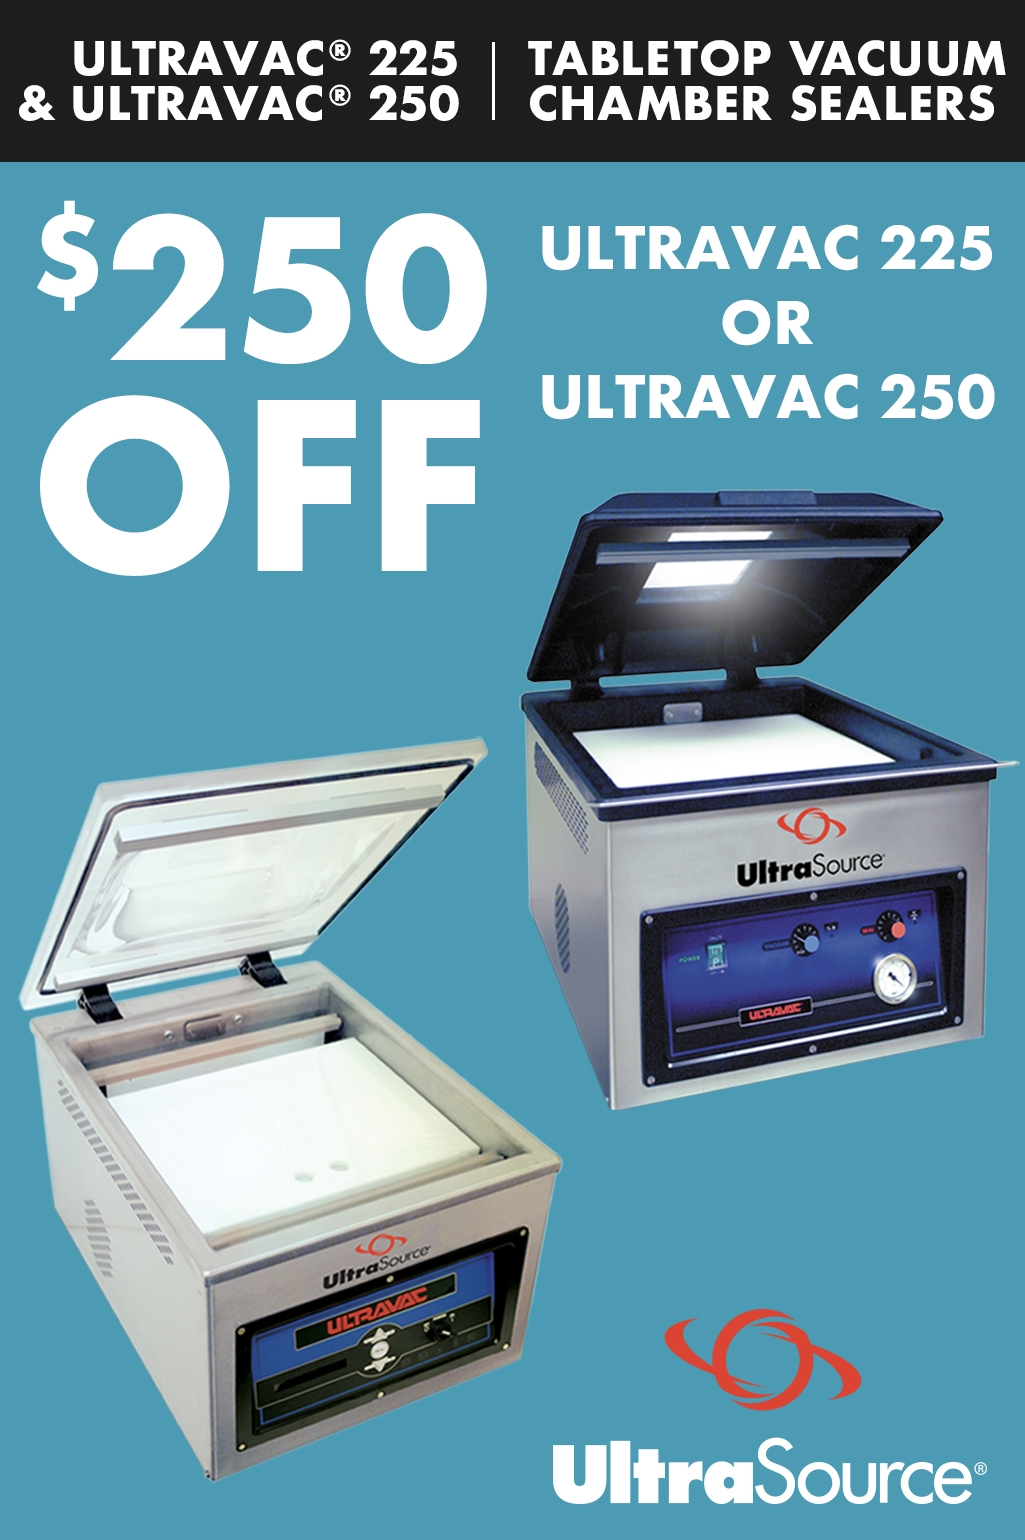 $250 Off Ultravac 250 and 250 Vacuum Chamber Sealers